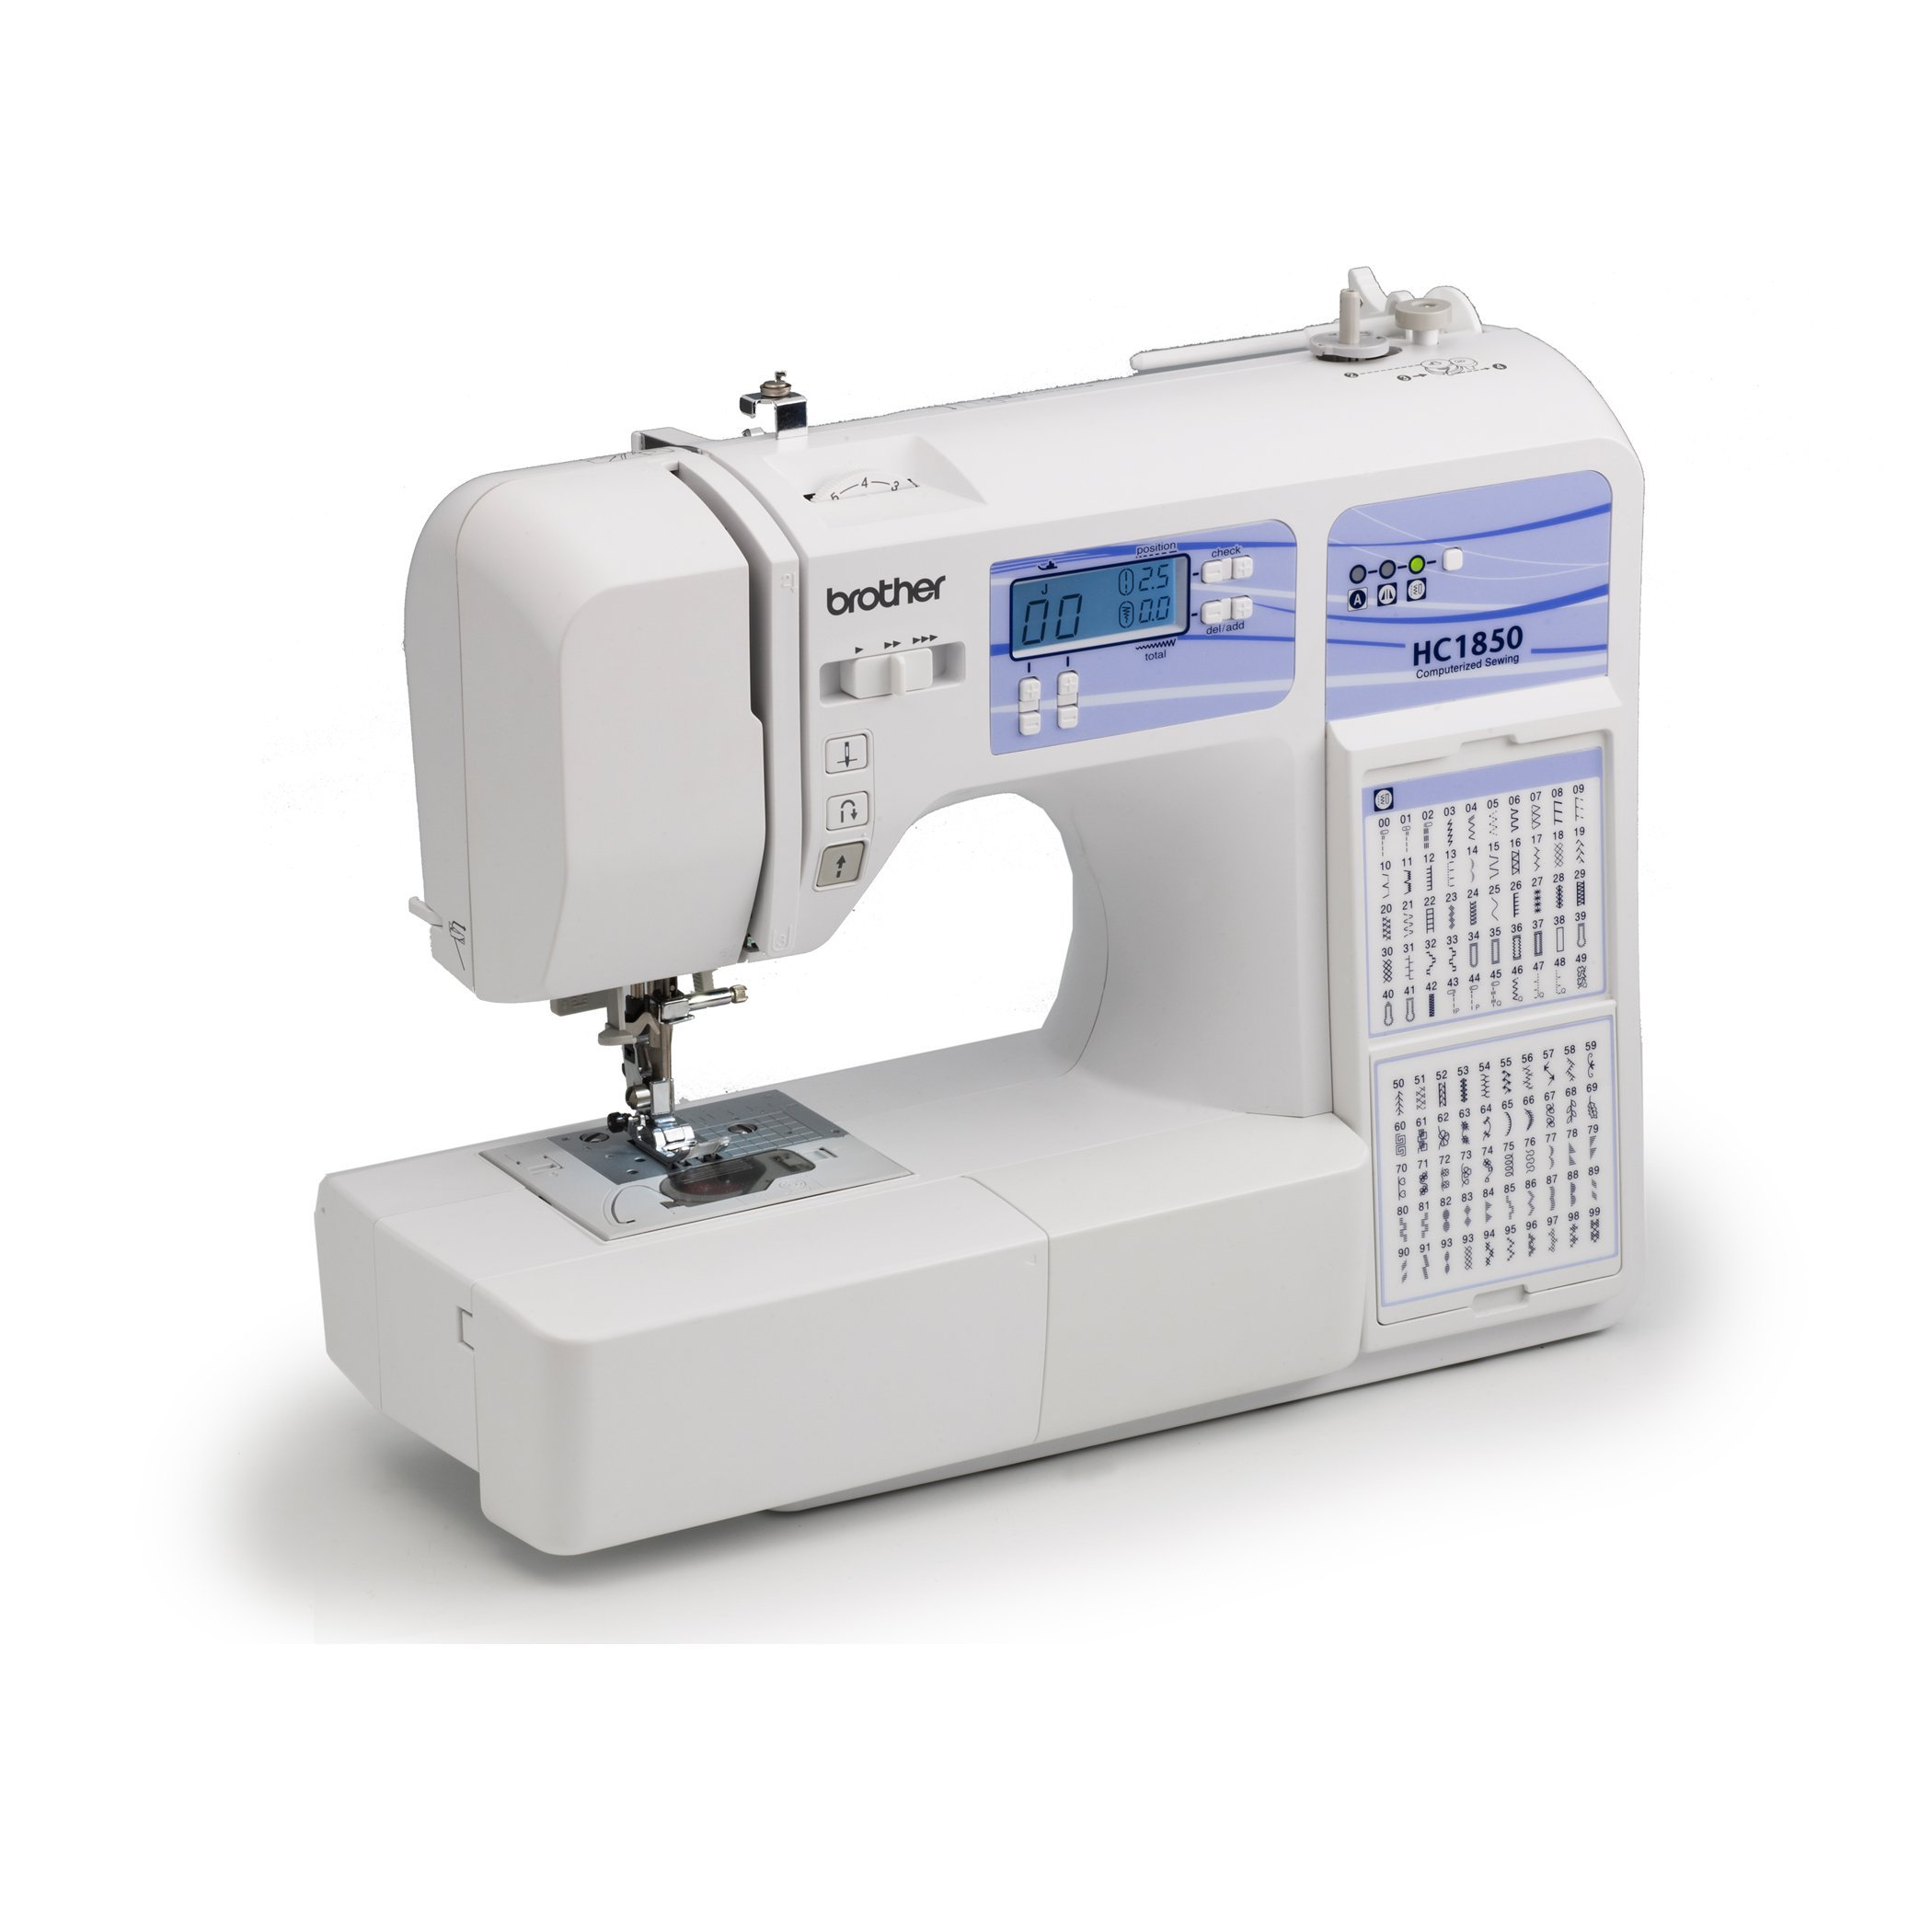 Best Reviews Sewing Machine For Quilting